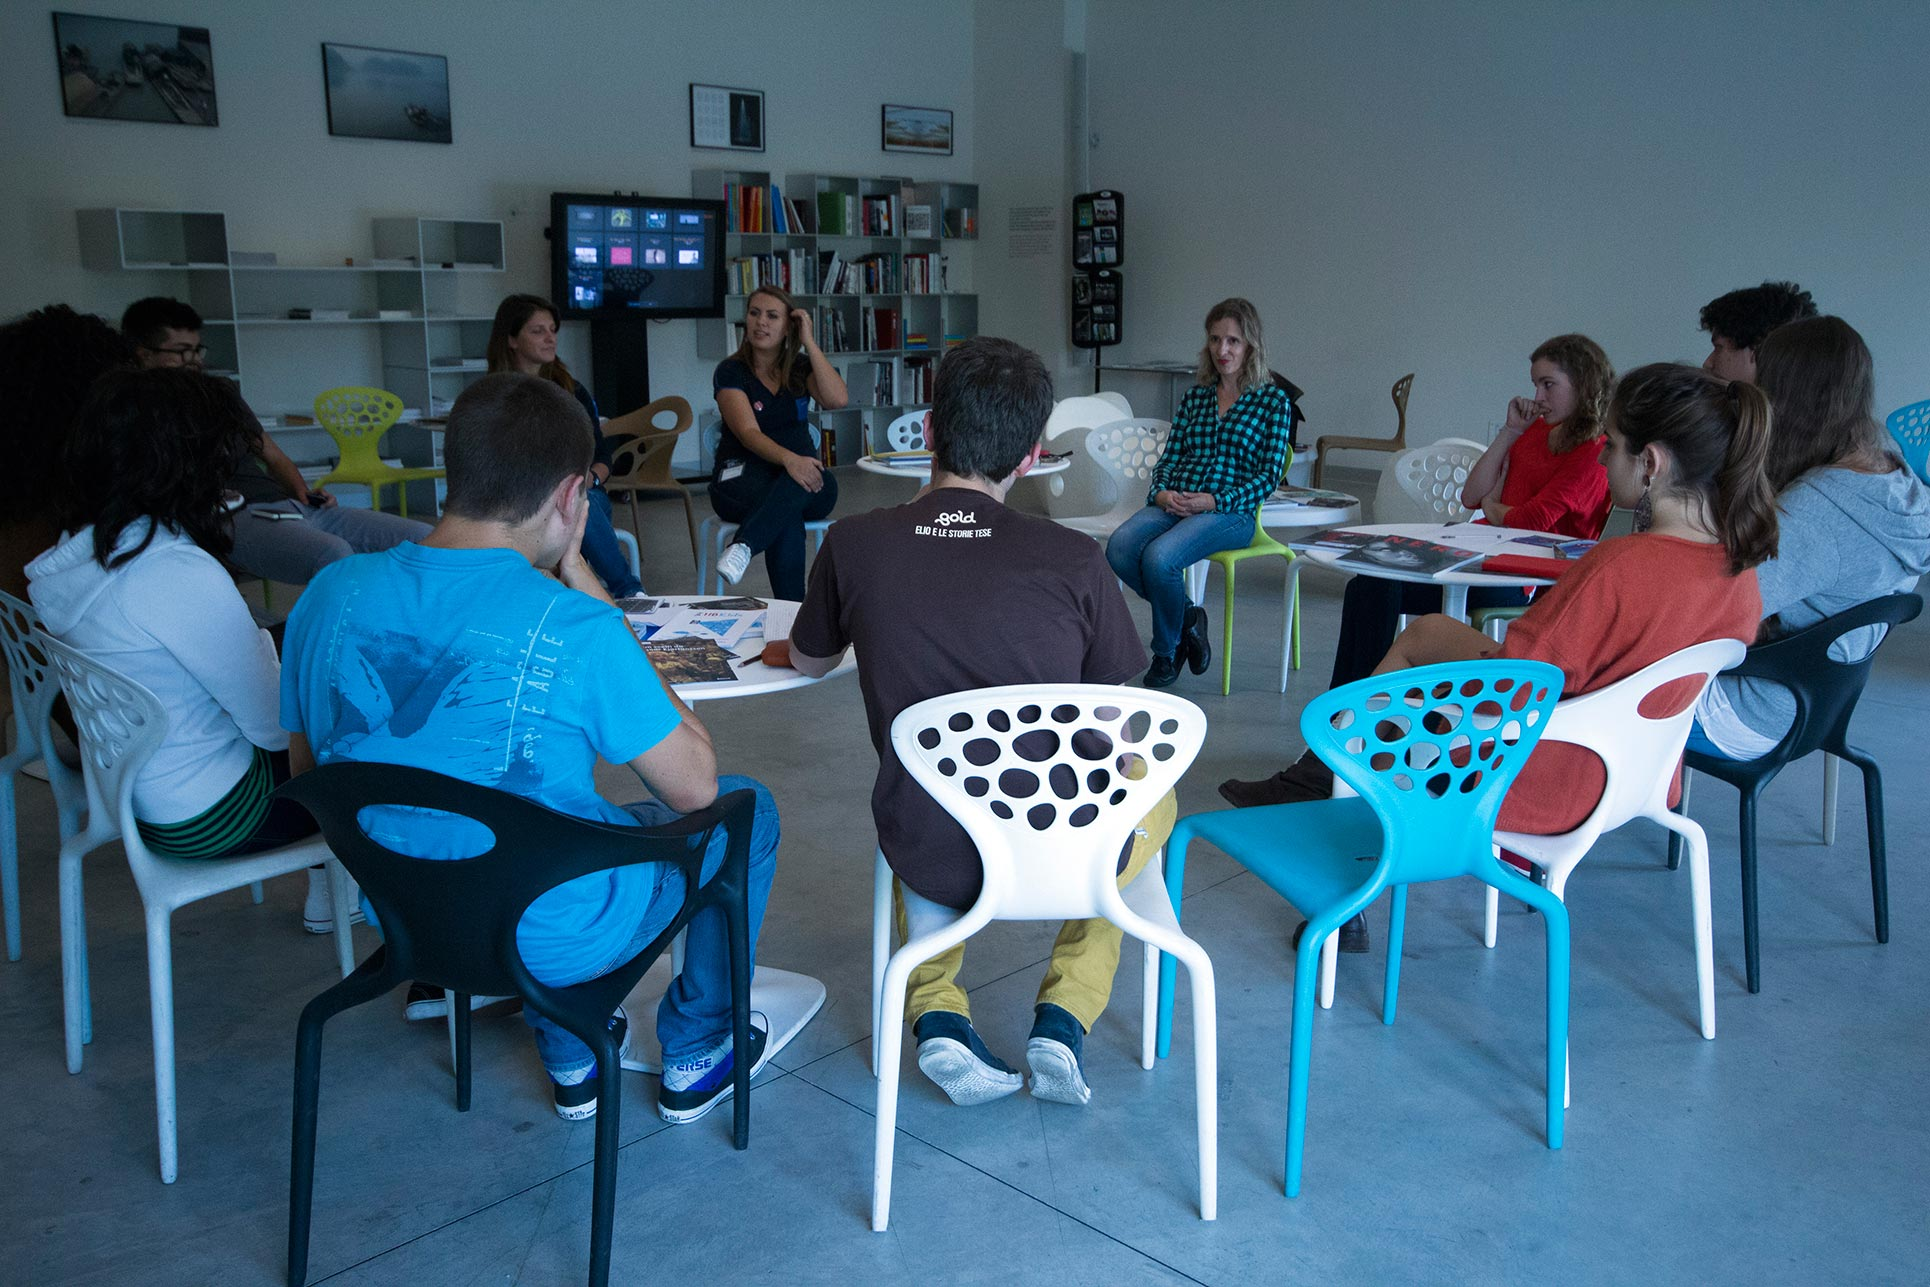 Year 12, Aesthetic Experience in Art Reception, Hangar Bicocca, discussion with Art Tutors about